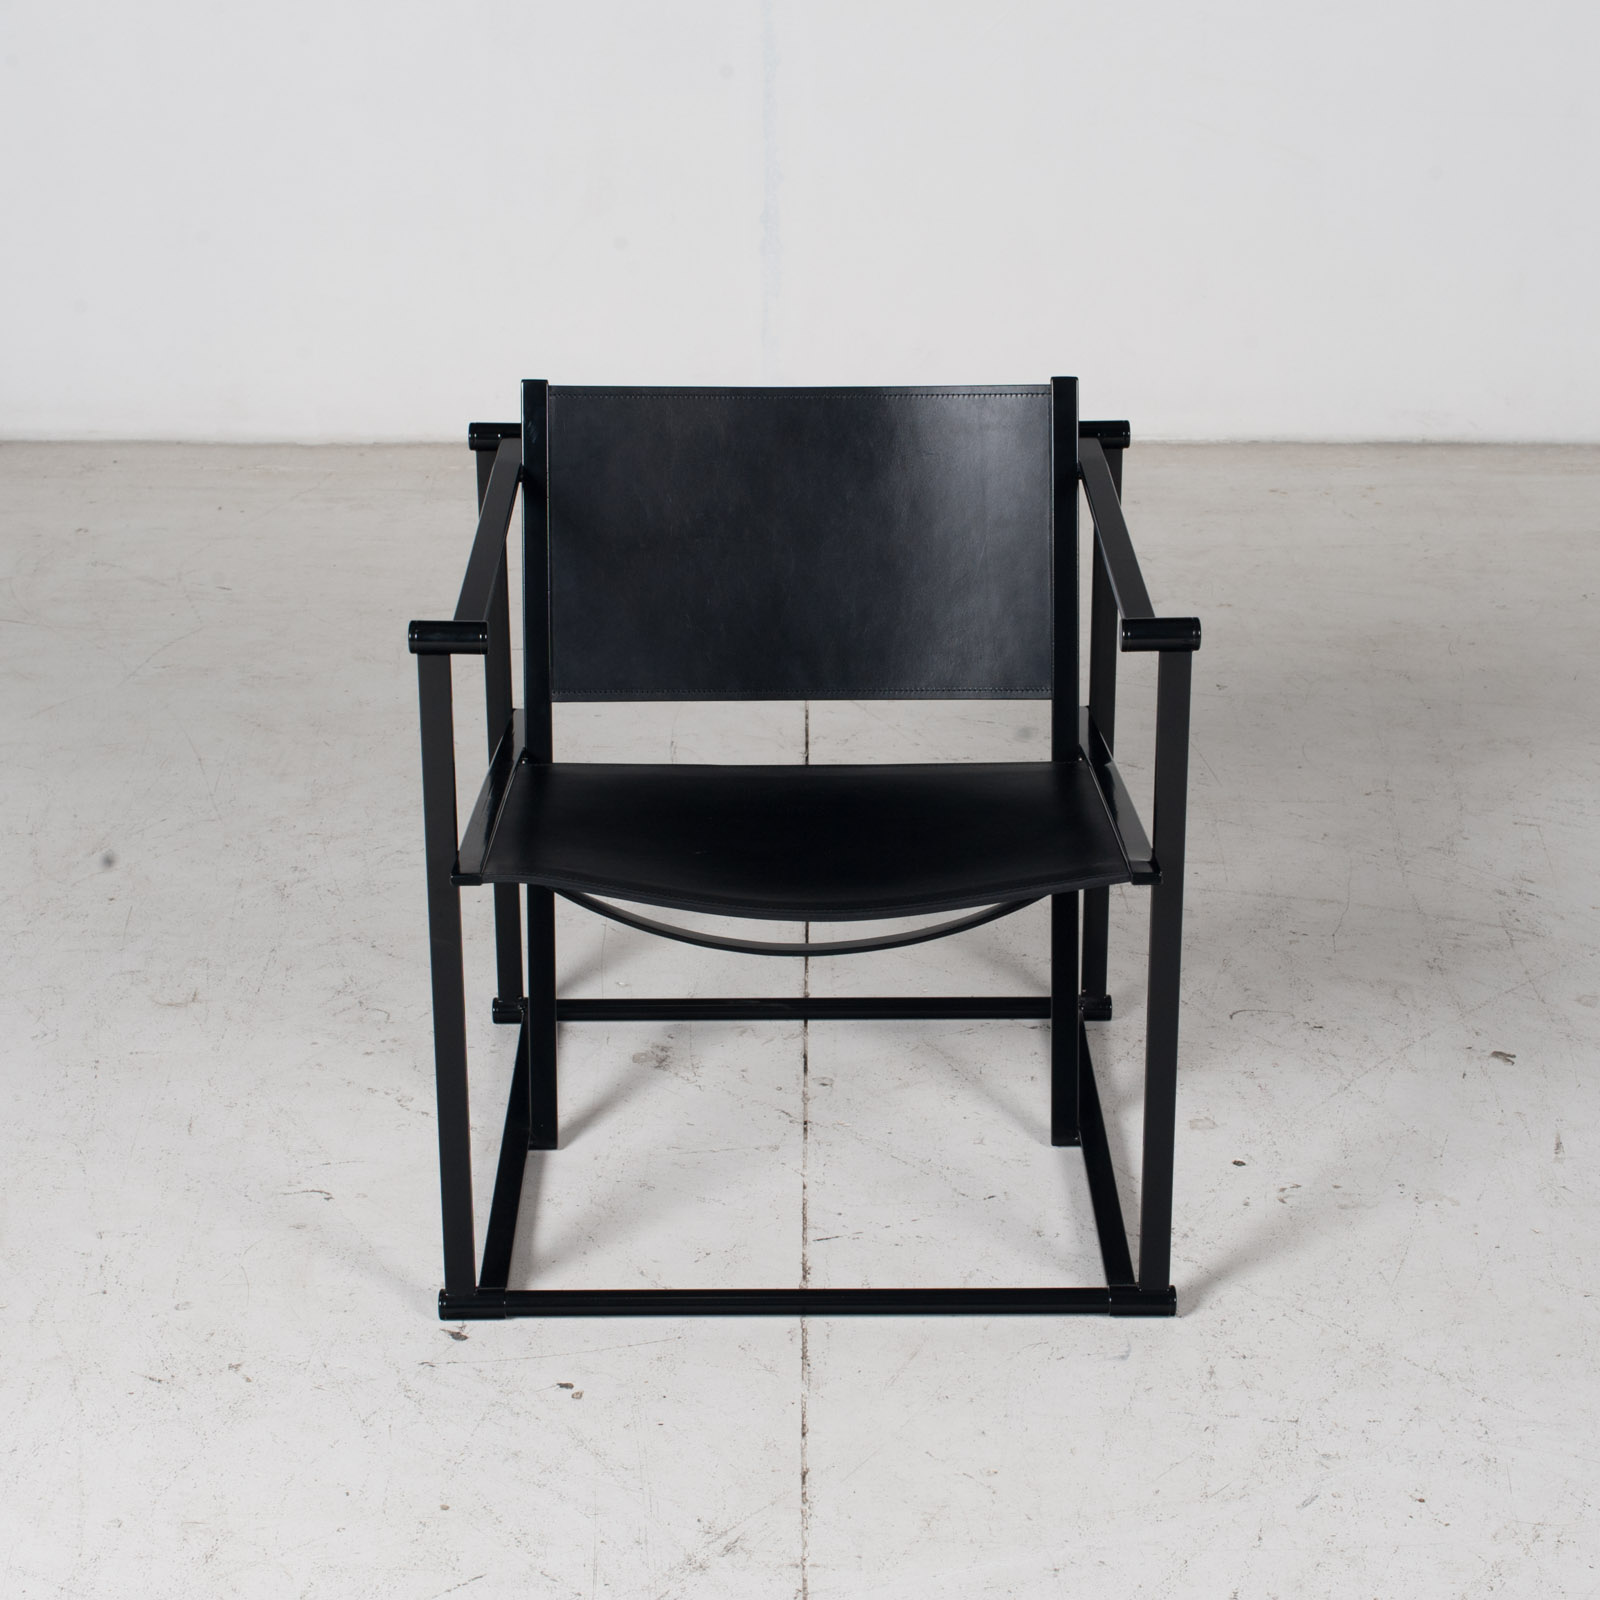 Pair Of Fm60 Cubic Chairs With Table By Radboud Van Beekum For Pastoe, 1980s, The Netherlands 2